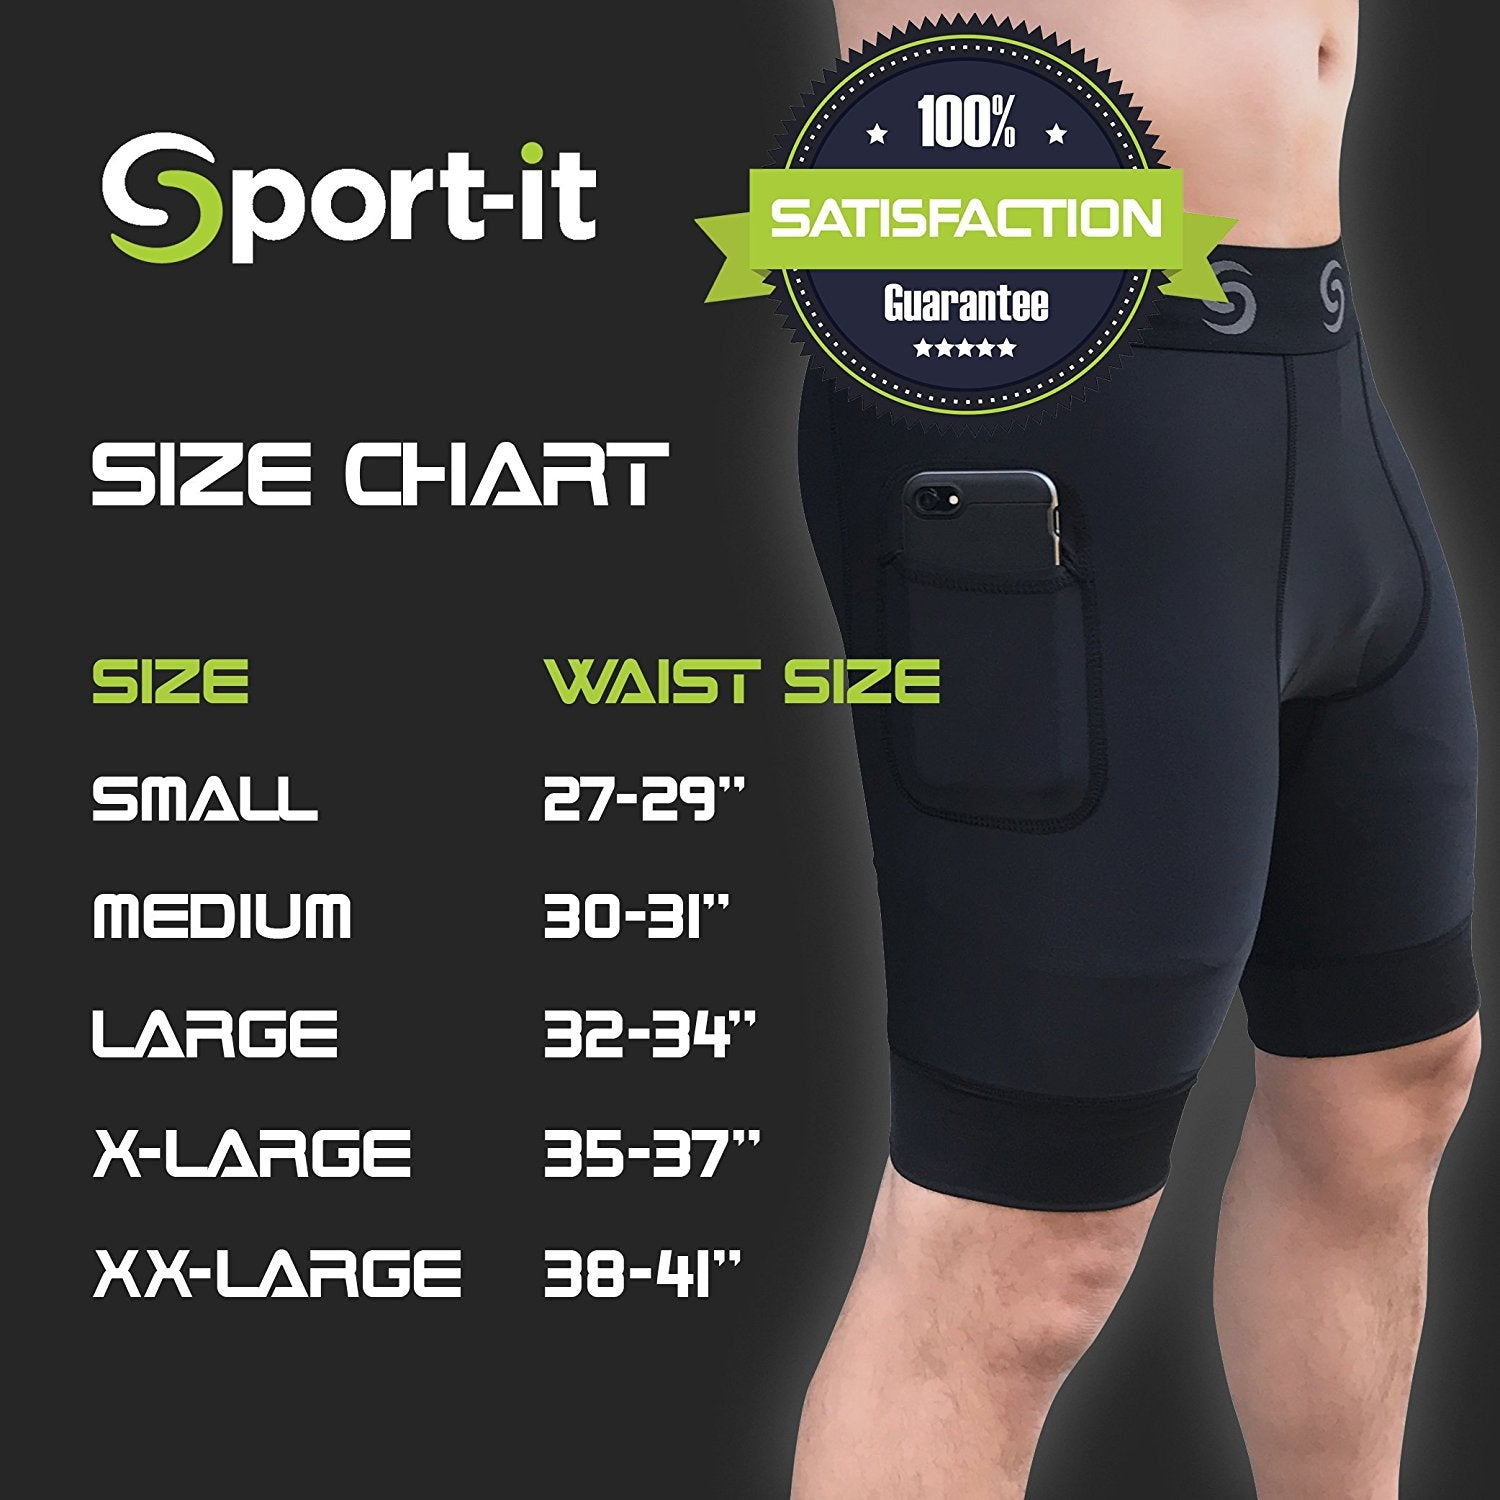 Go Sport-it: MEN'S COMPRESSION SHORTS with Side Pockets